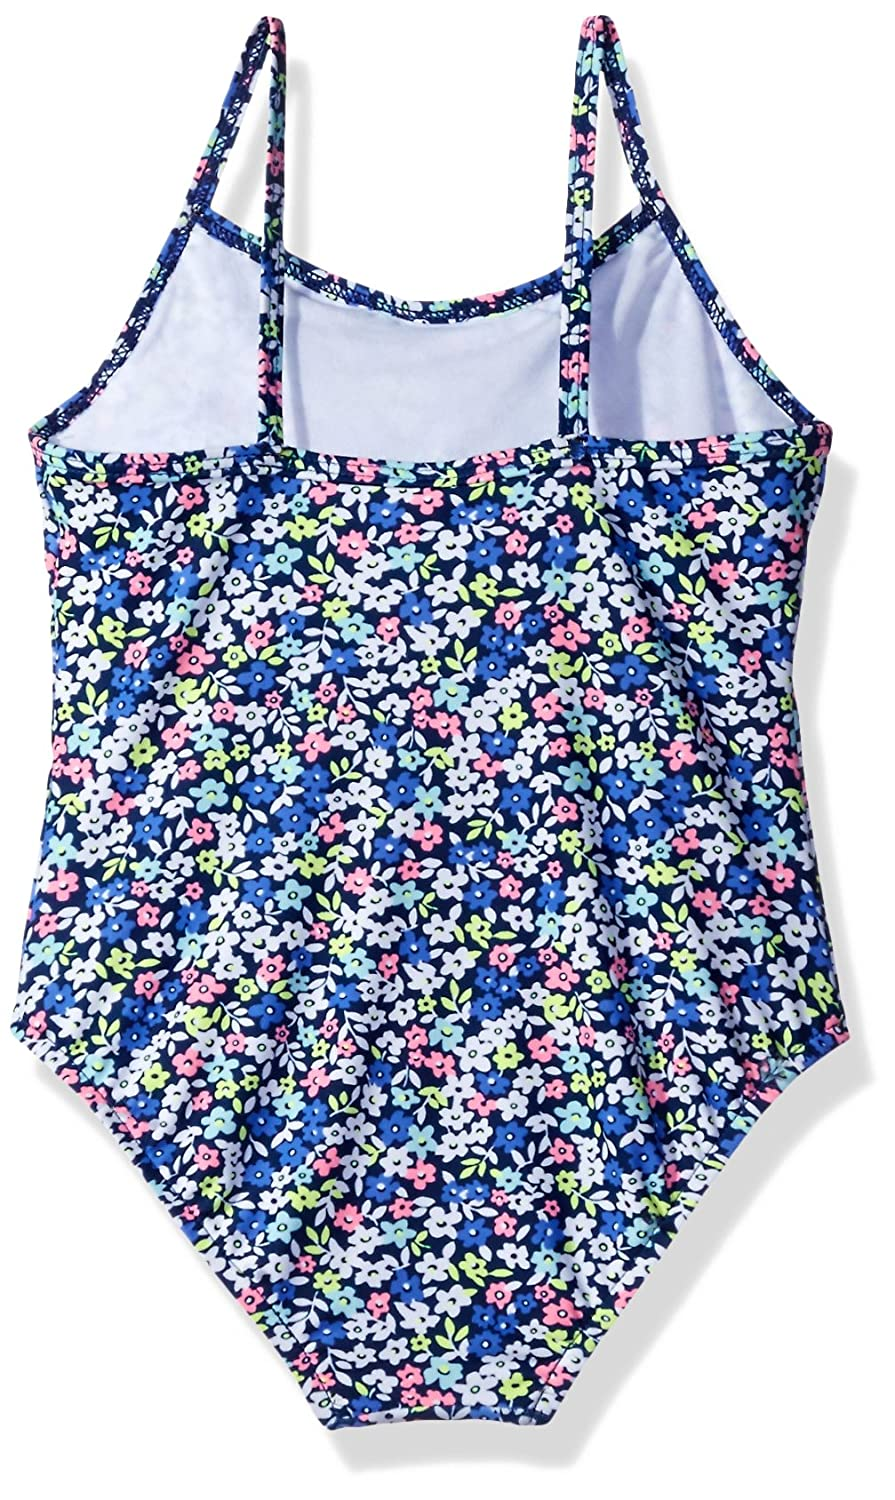 Carters Girls Ditsy Floral One Piece Swimsuit